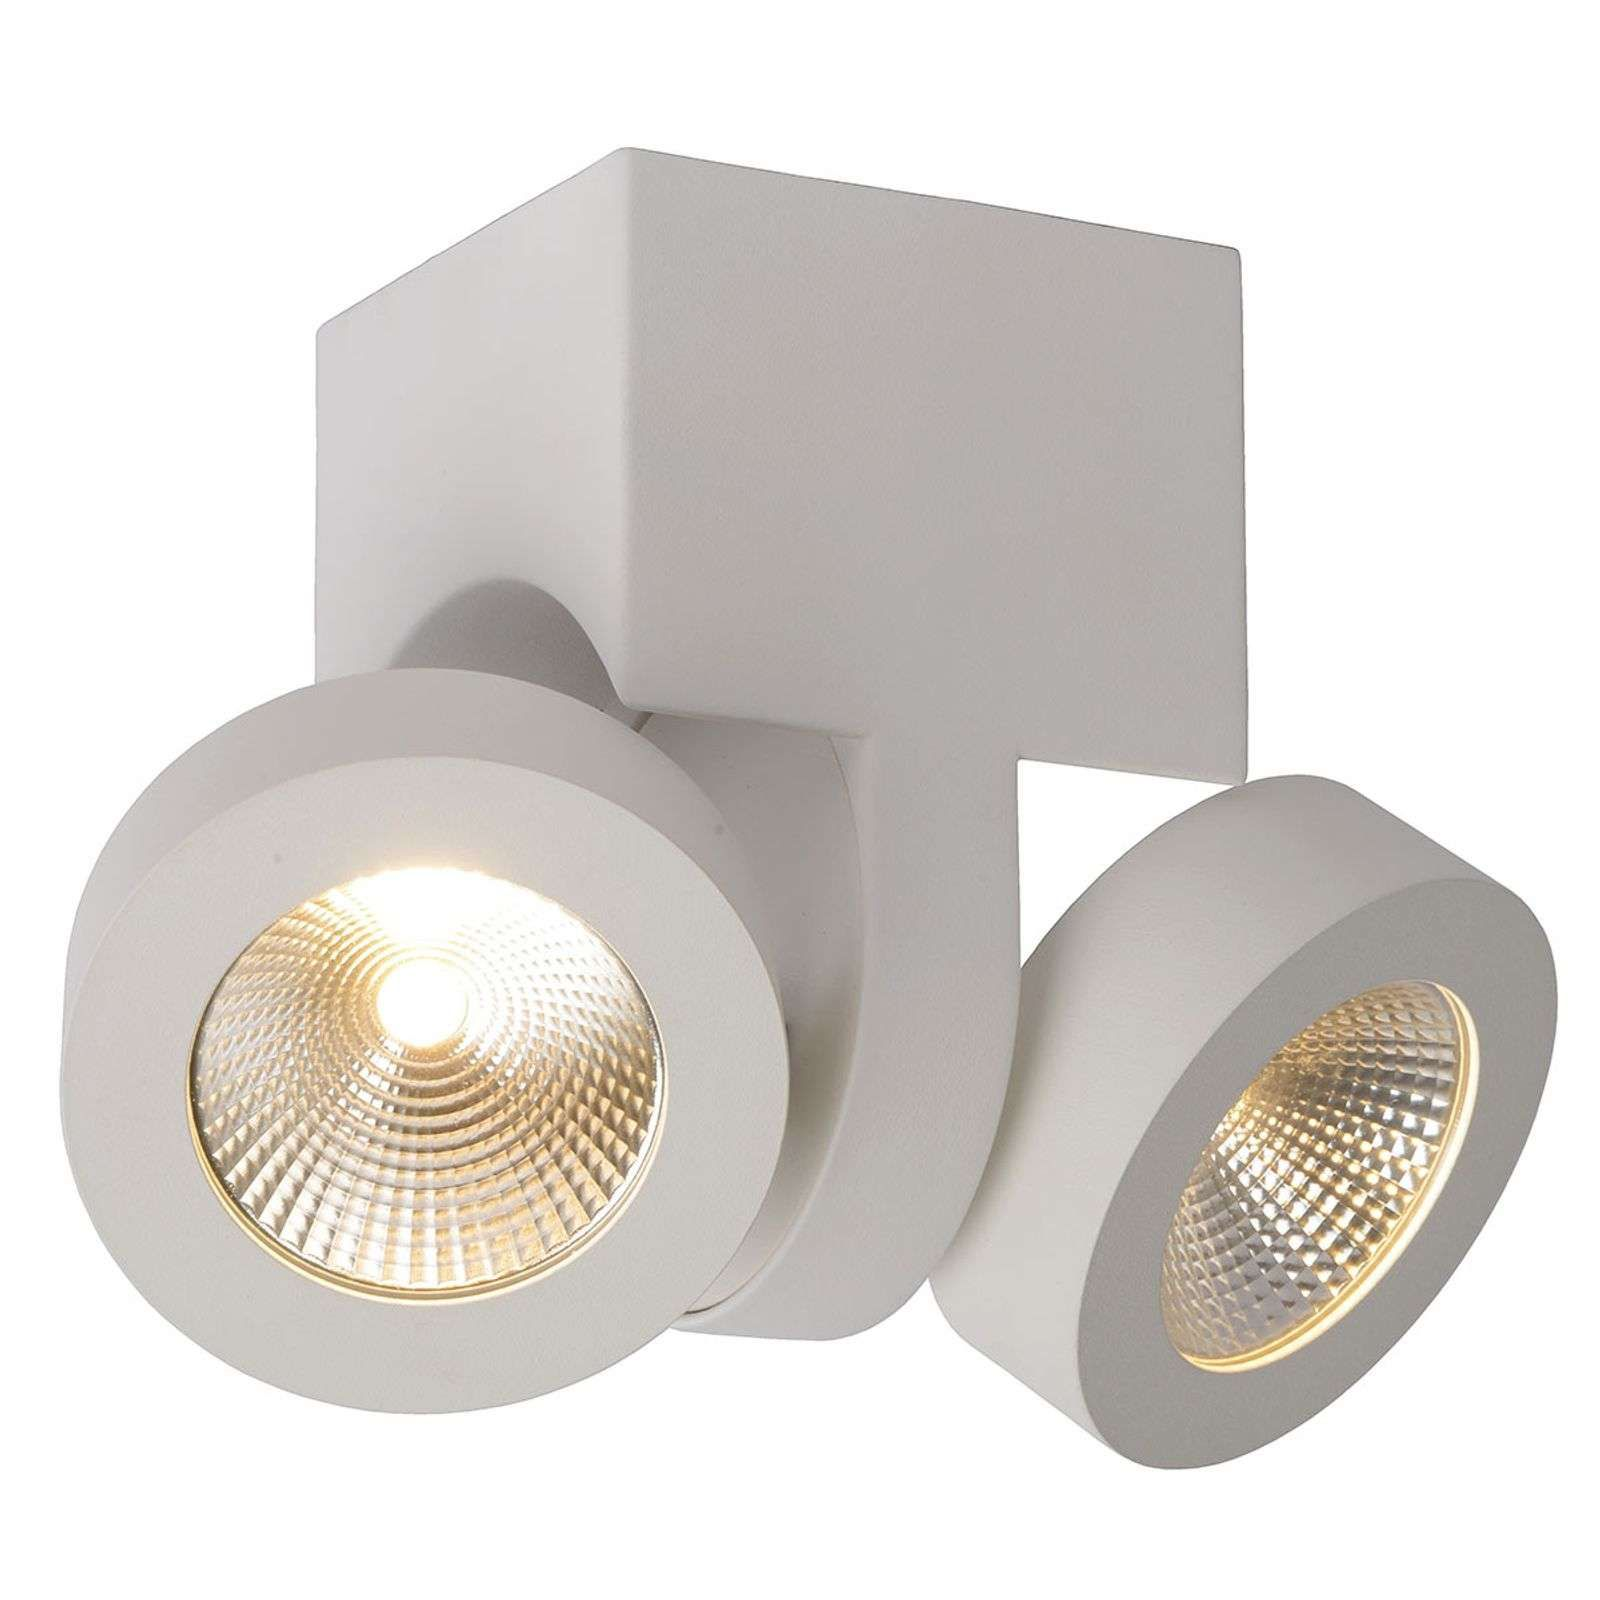 Spot A Led Mitrax Bianco 2 Luci Di Lucide In 2020 Led Deckenspots Led Deckenlampen Und Badezimmer Licht